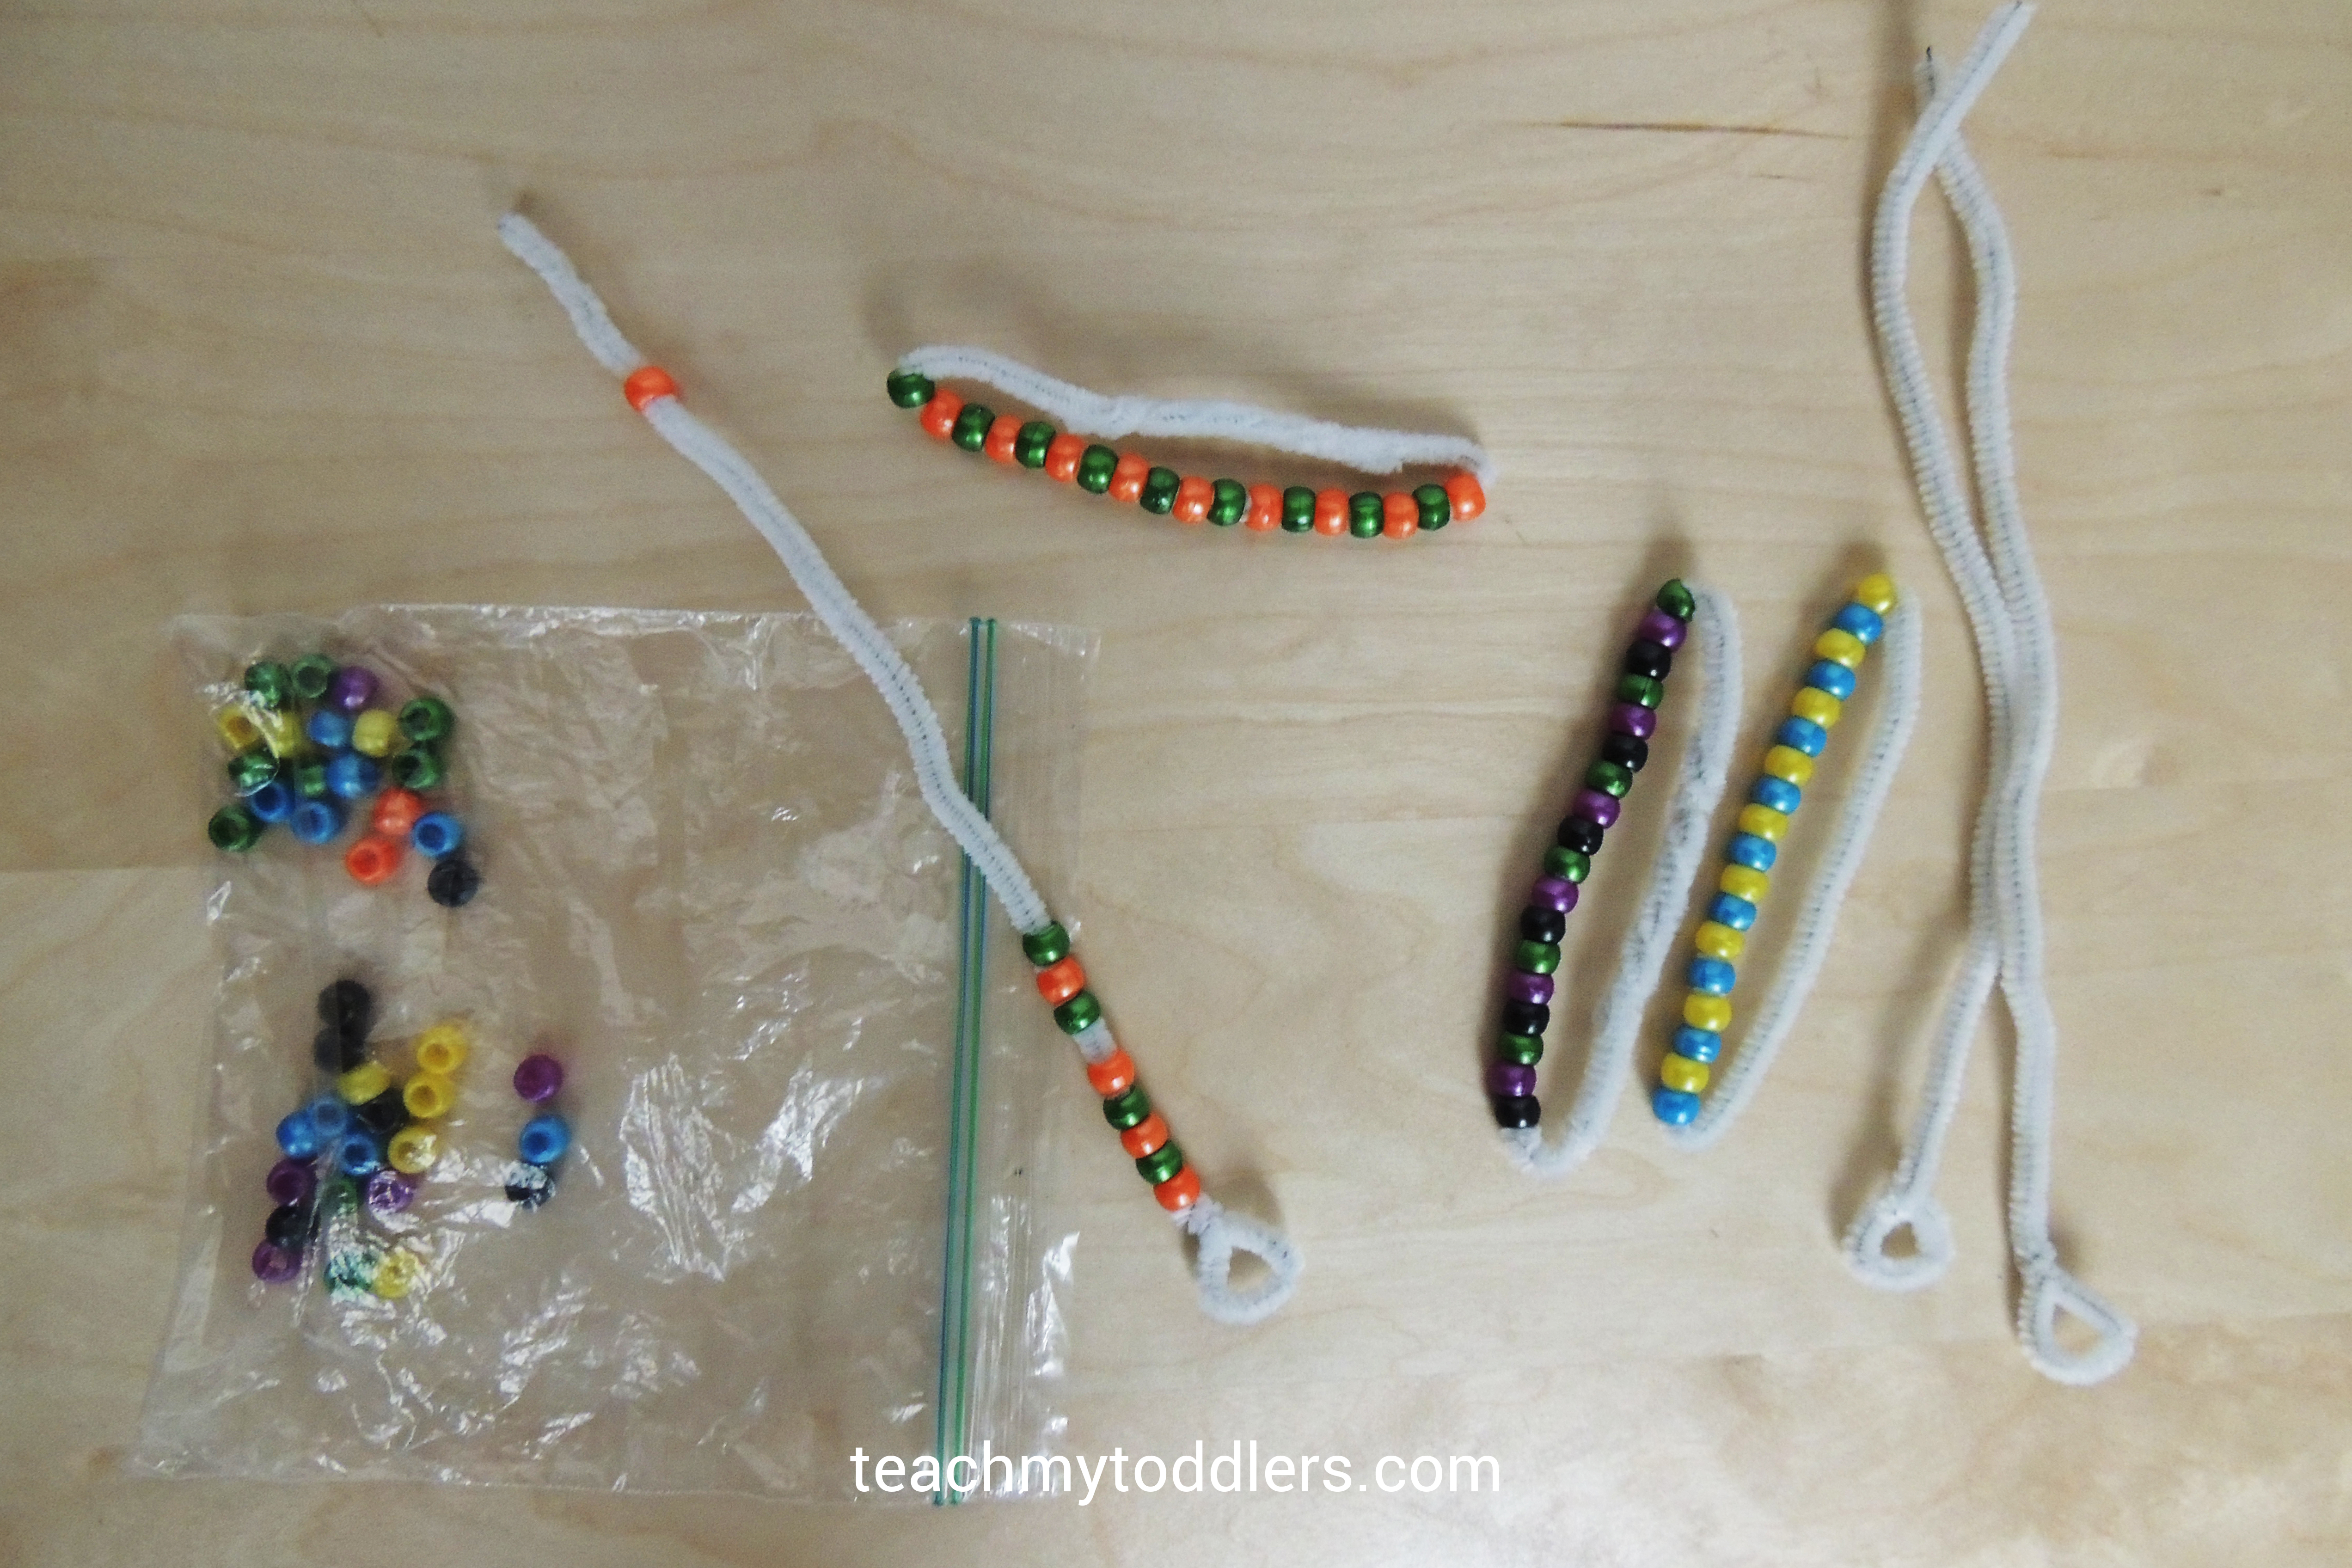 Pipe cleaners and beads toddler activity for General Conference